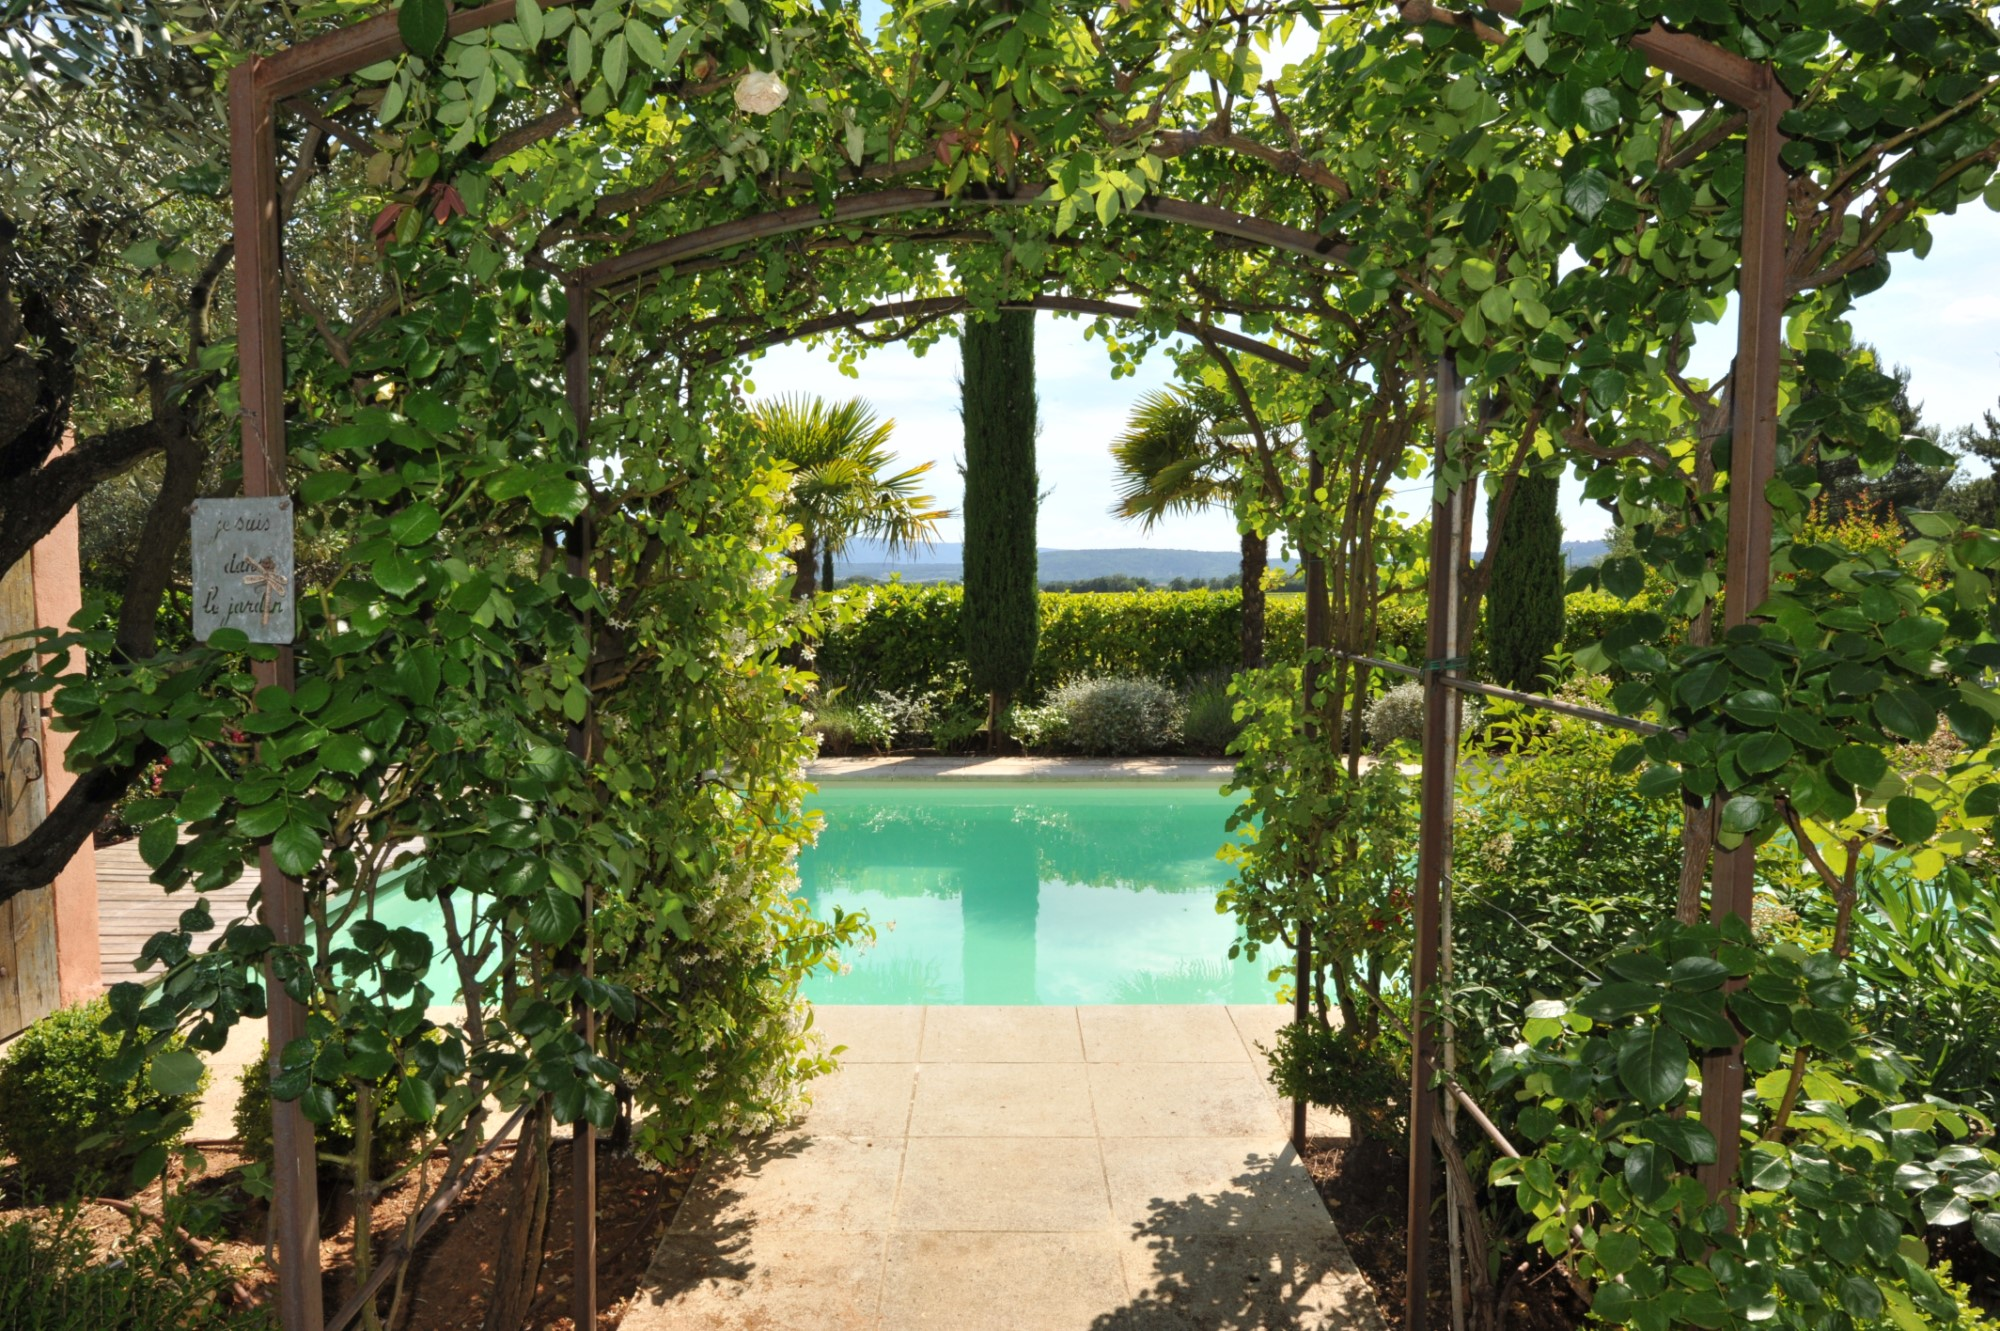 Property with pool and views for sale in Luberon